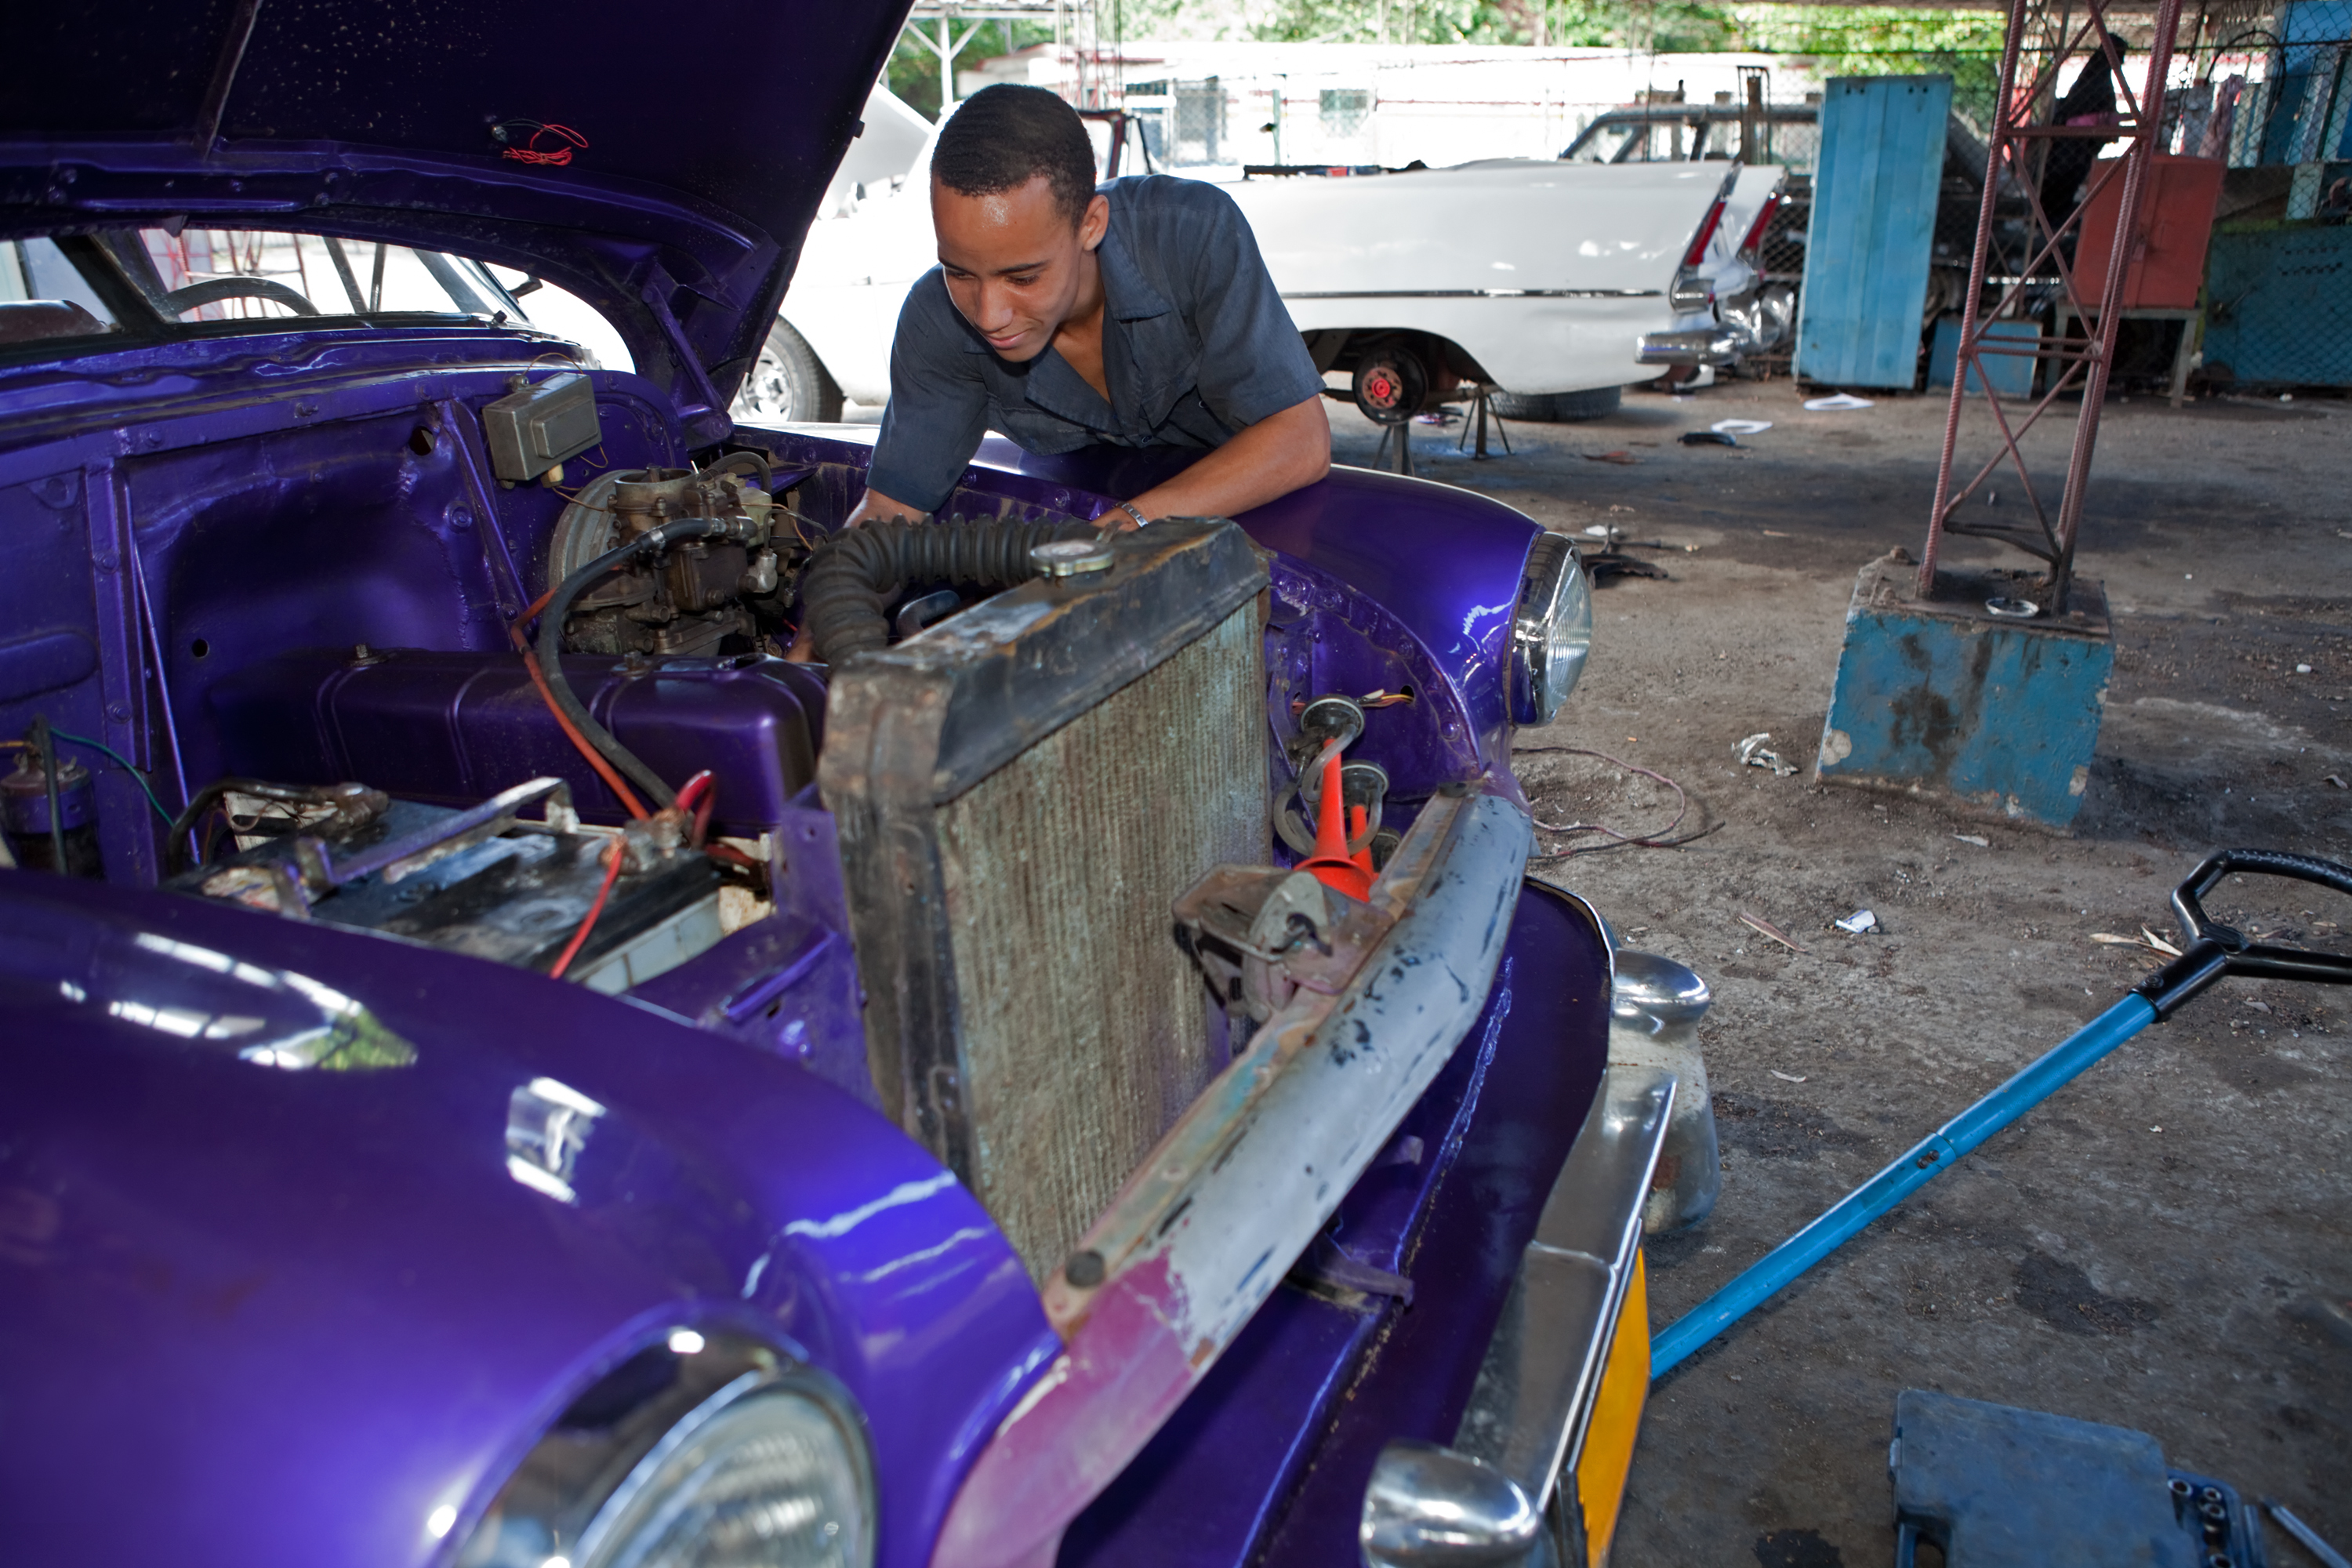 An auto mechanic, working on an automobile